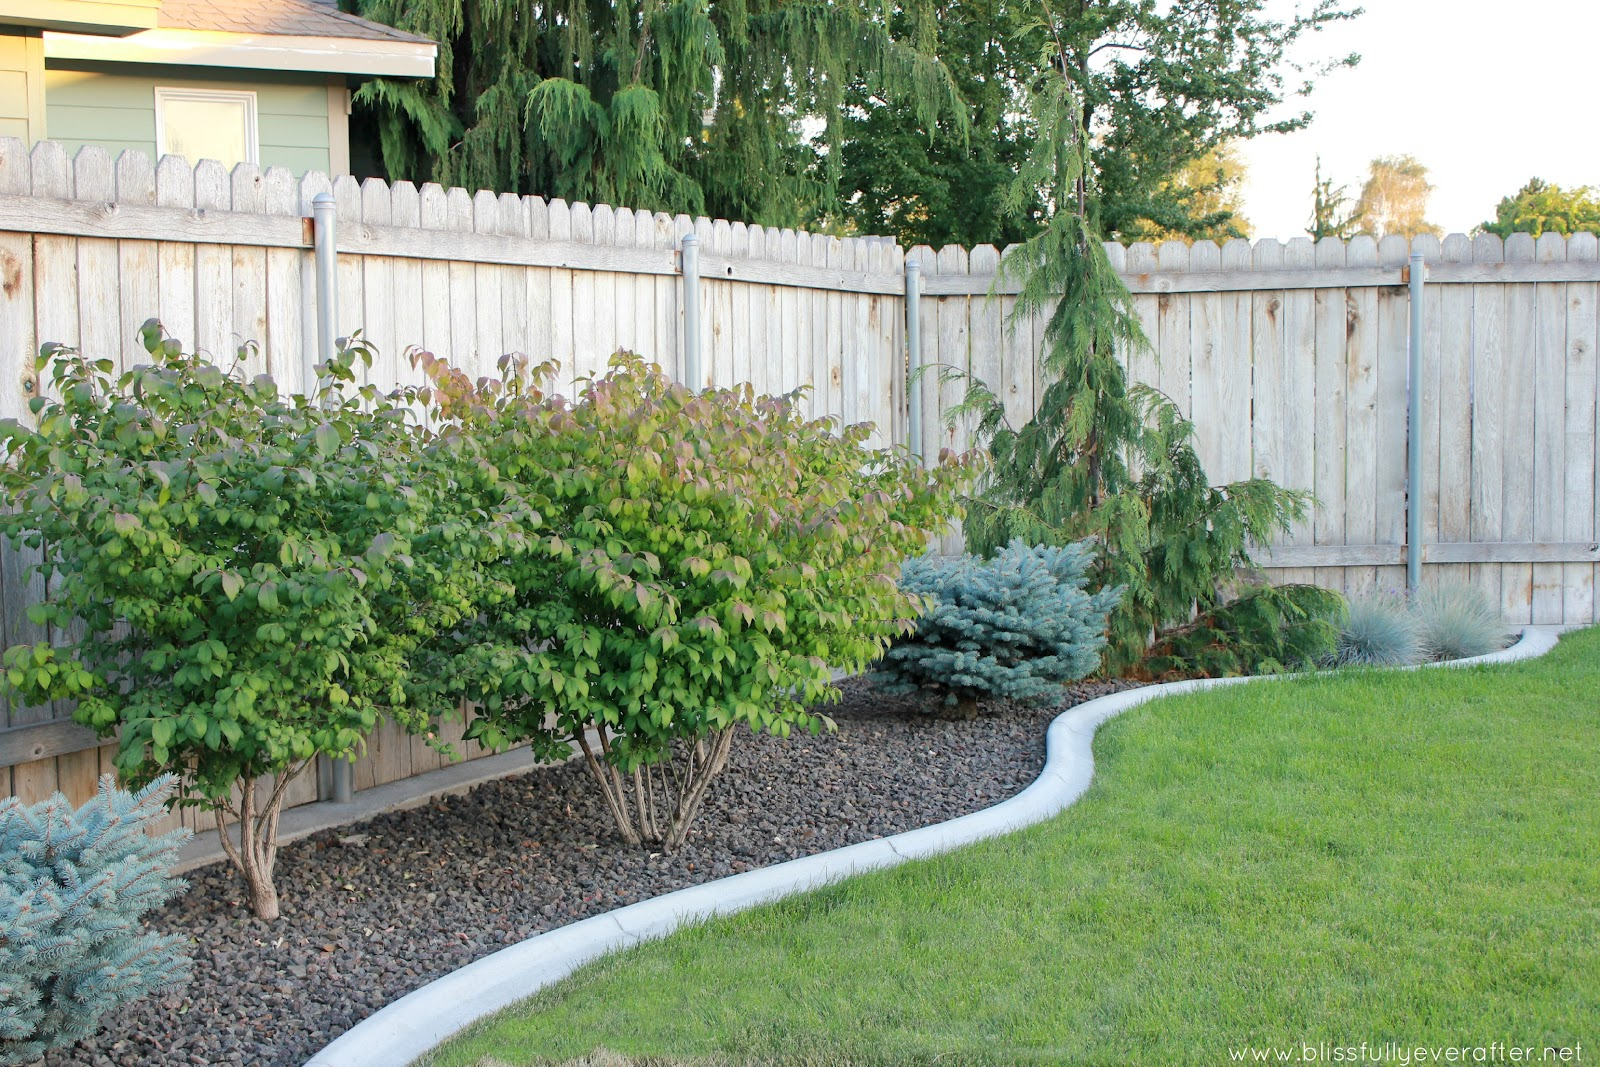 Landscaping Yard Photos : Yes landscaping custom front yard ideas for bi level